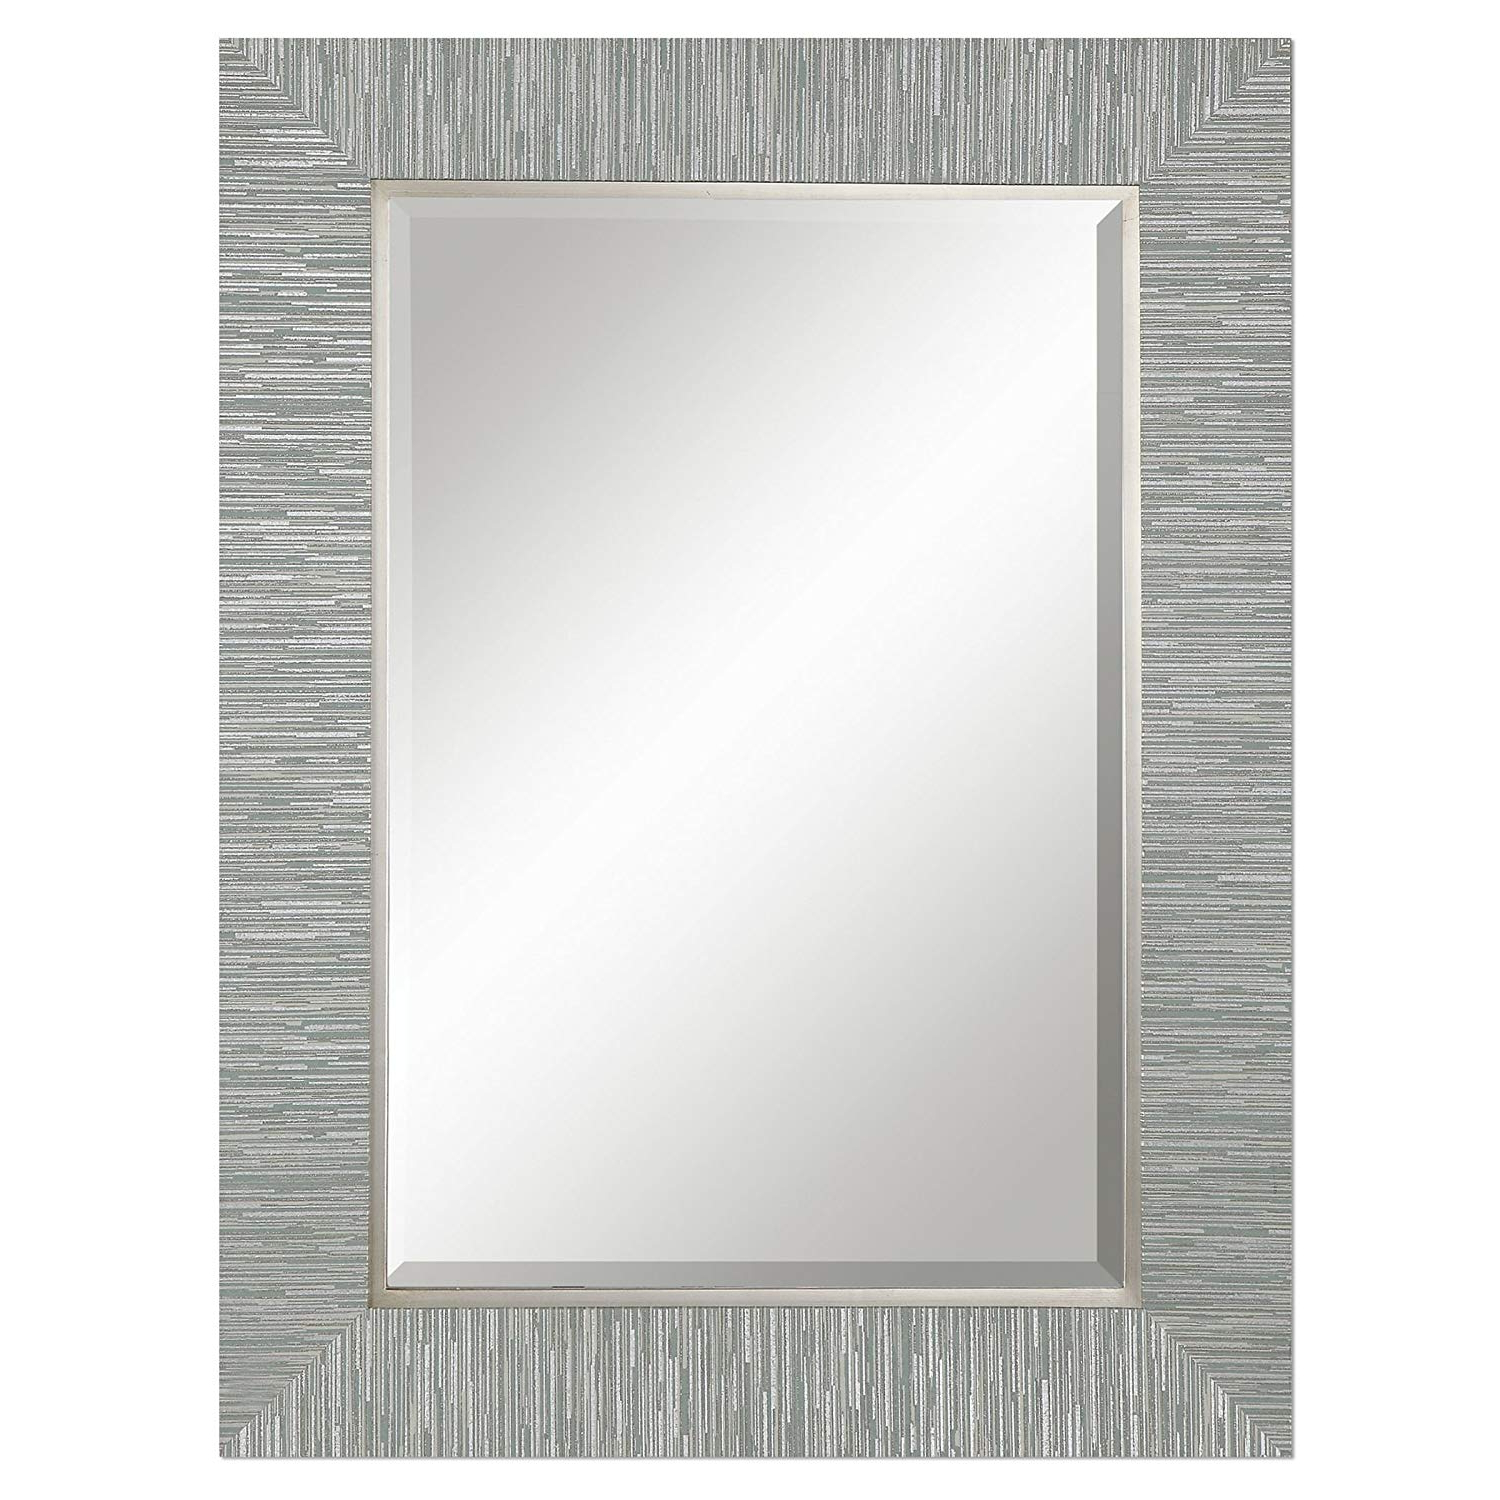 Trendy Coastal Style Wall Mirrors Regarding Amazon: Zinc Decor Blue Gray Silver Striped Wood Wall Mirror (View 6 of 20)